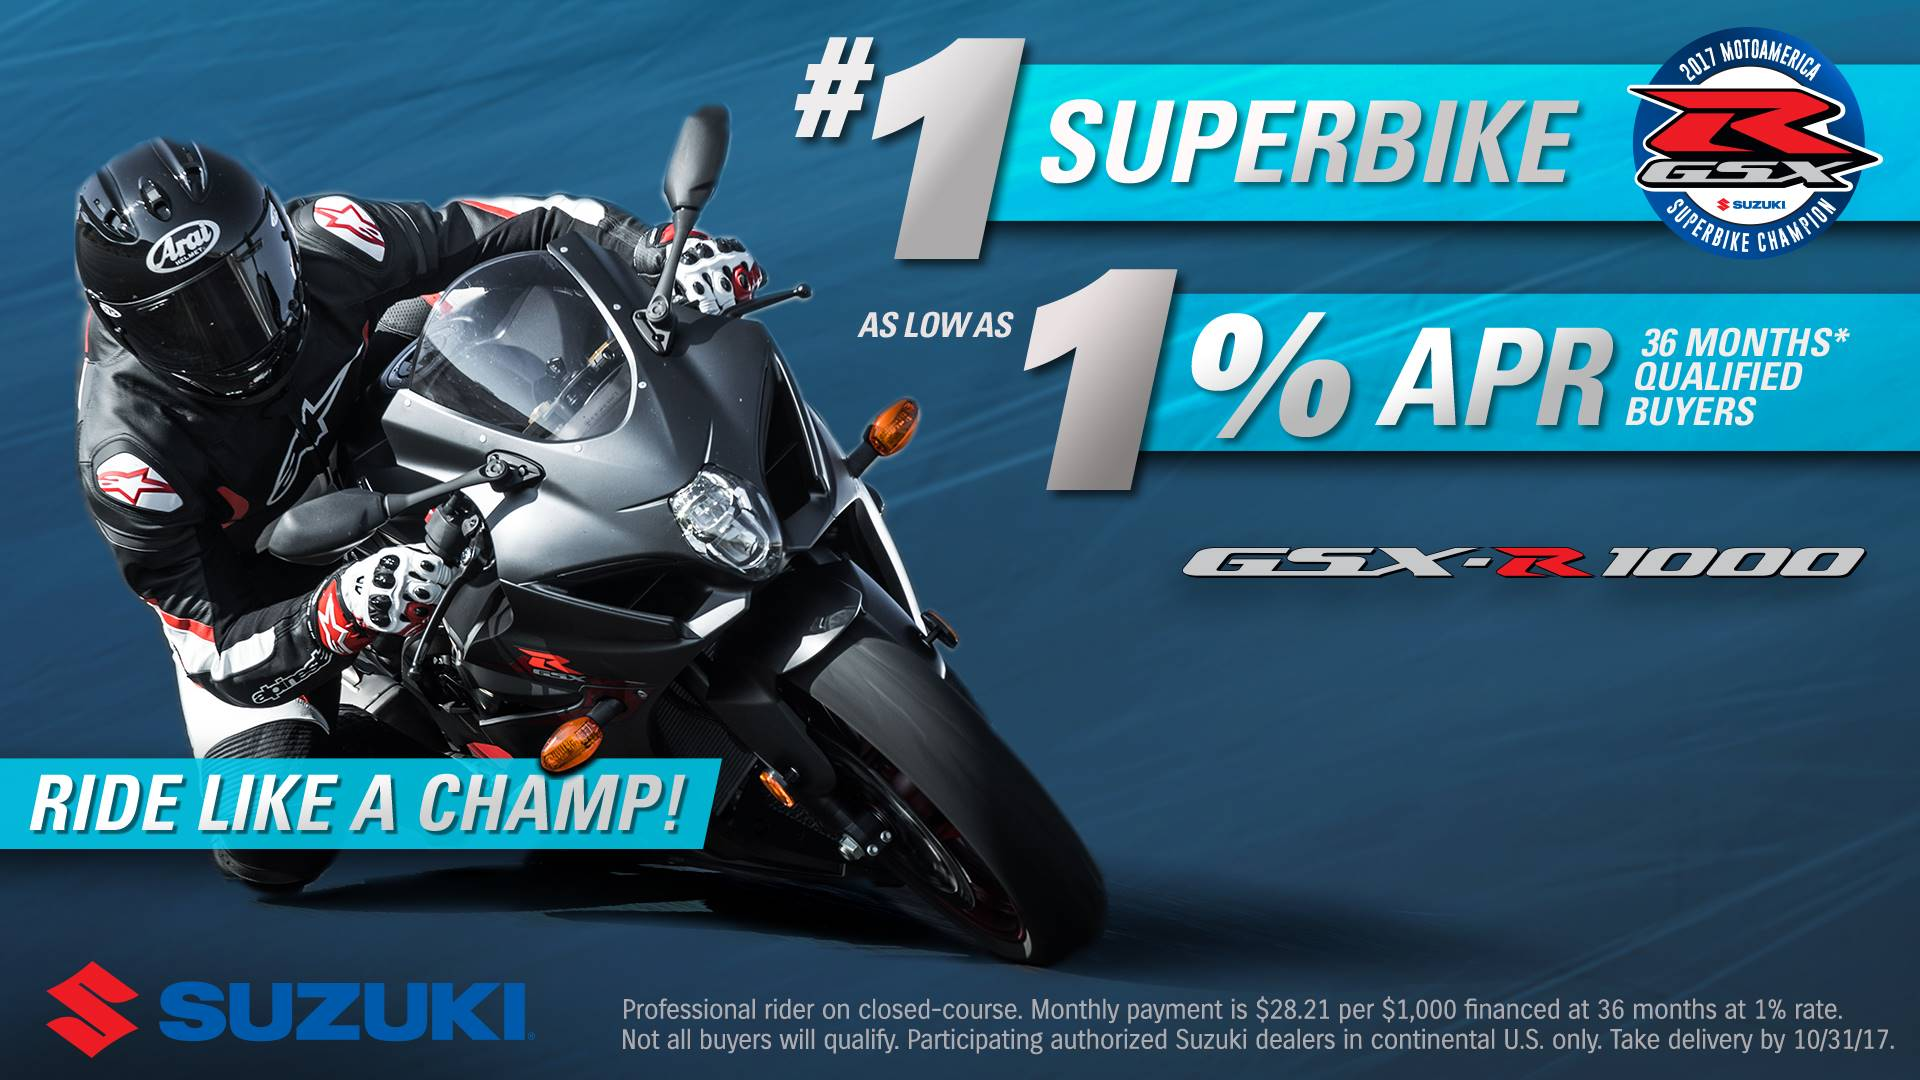 Suzuki GSX-R1000 Ride Like A Champ!